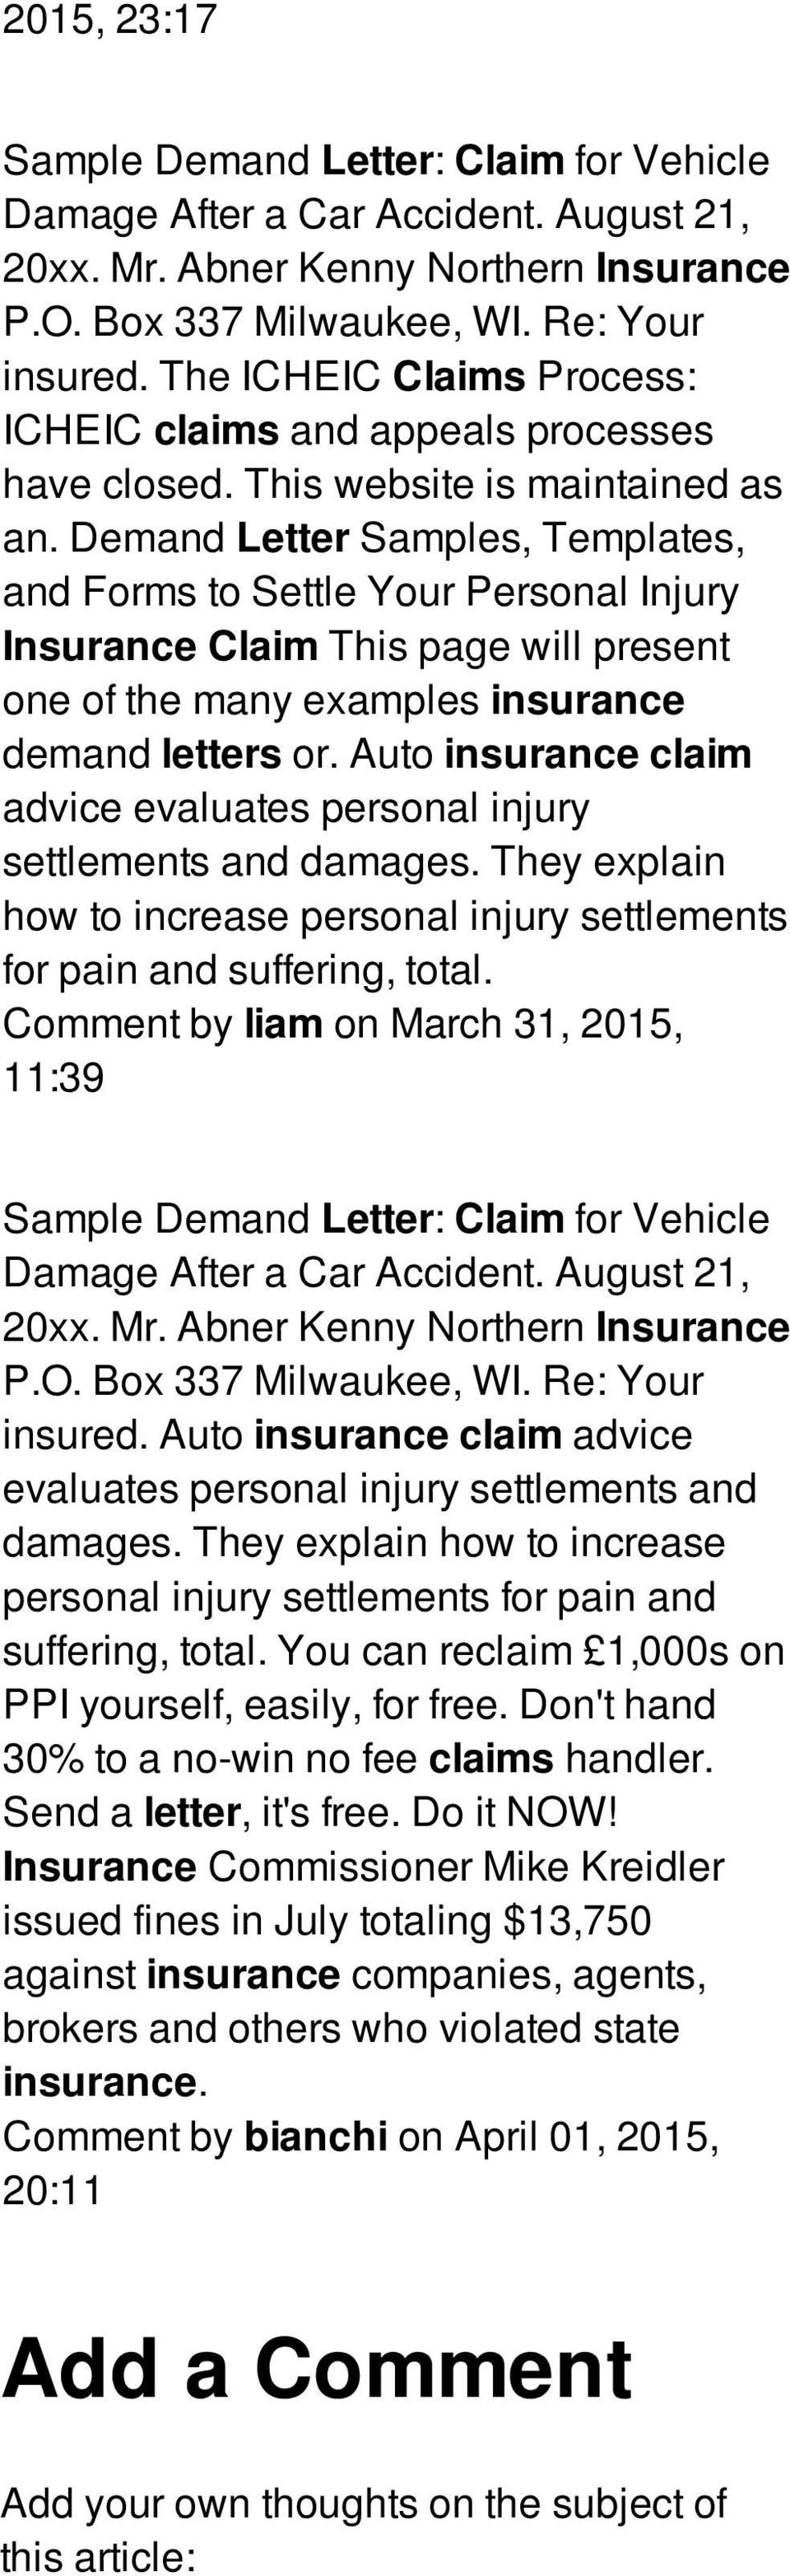 Demand Letter Samples, Templates, and Forms to Settle Your Personal Injury Insurance Claim This page will present one of the many examples insurance demand letters or.